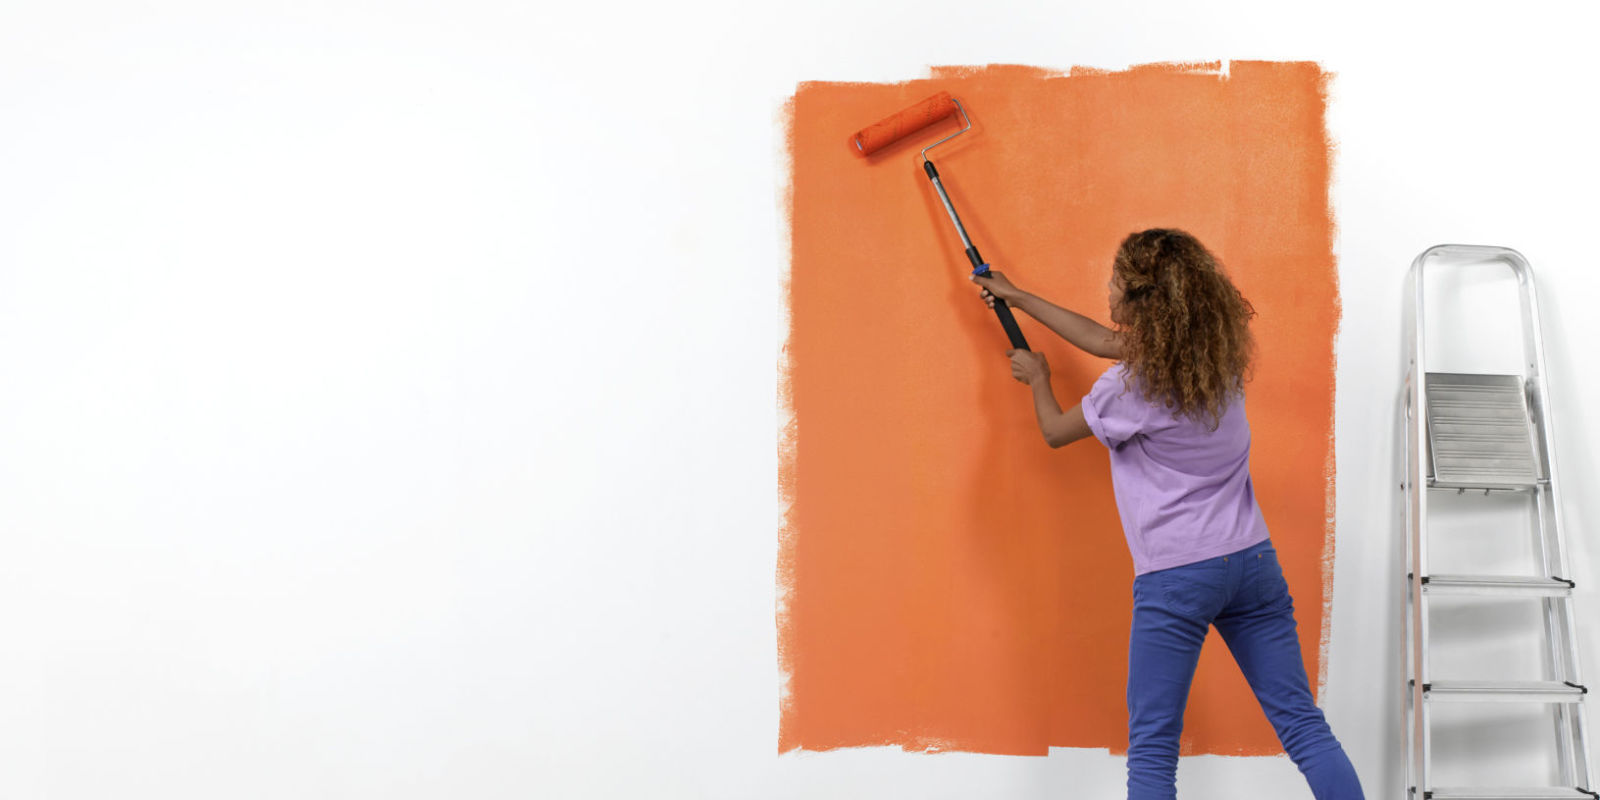 How To Paint A Wall Using A With Roller Technique With A Woman  Demonstrating With Orange